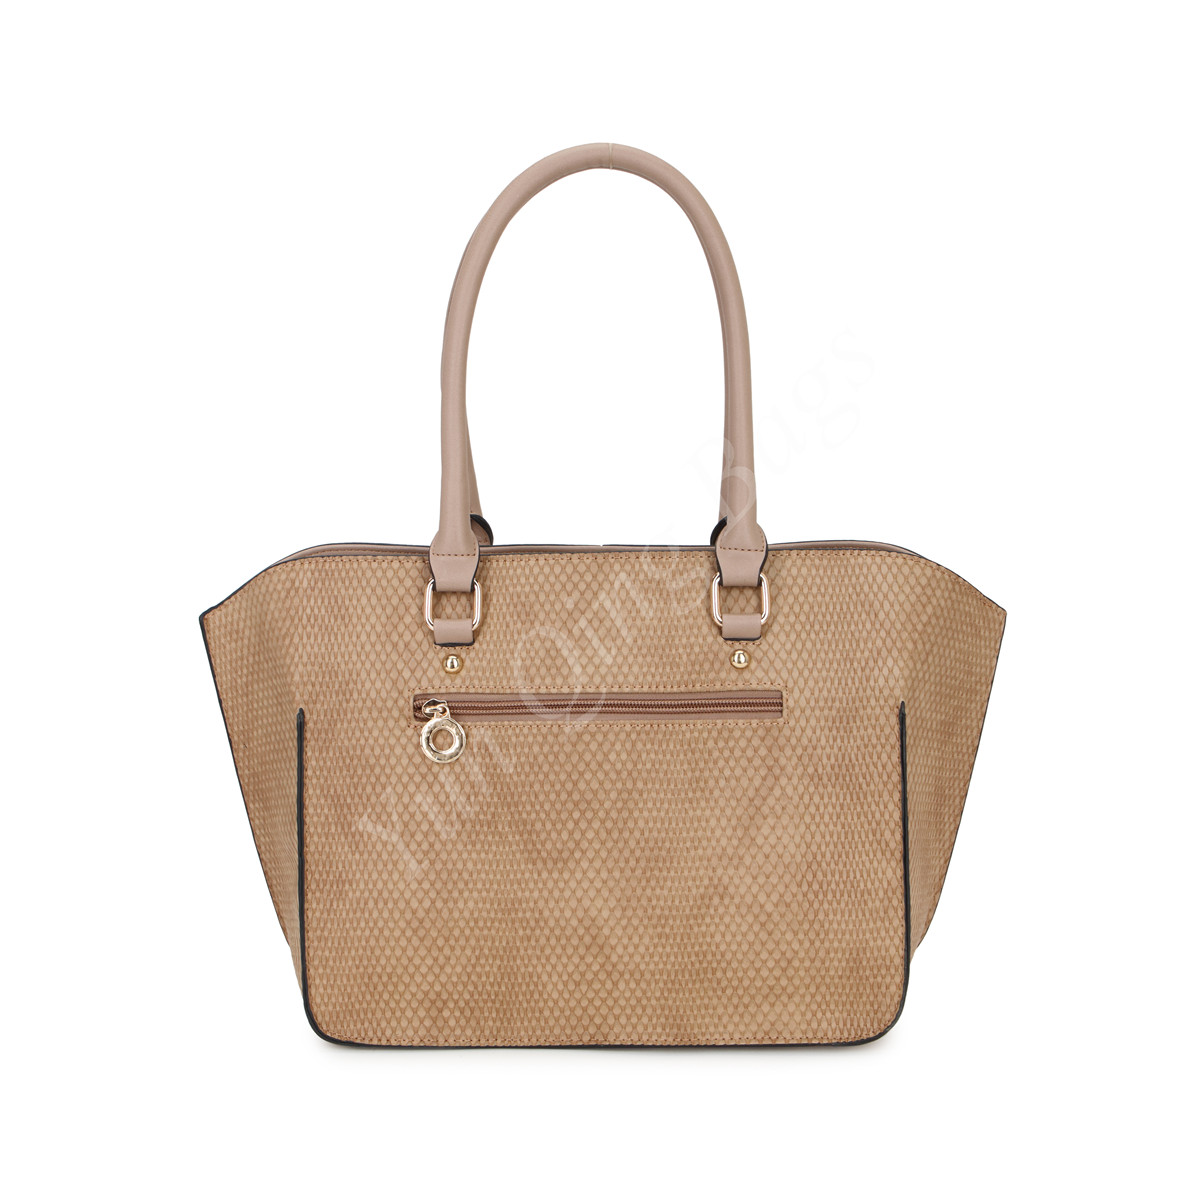 Snake Print Texture PU Fashion Tote Bag Wholesale Ladies Handbags From Guangzhou